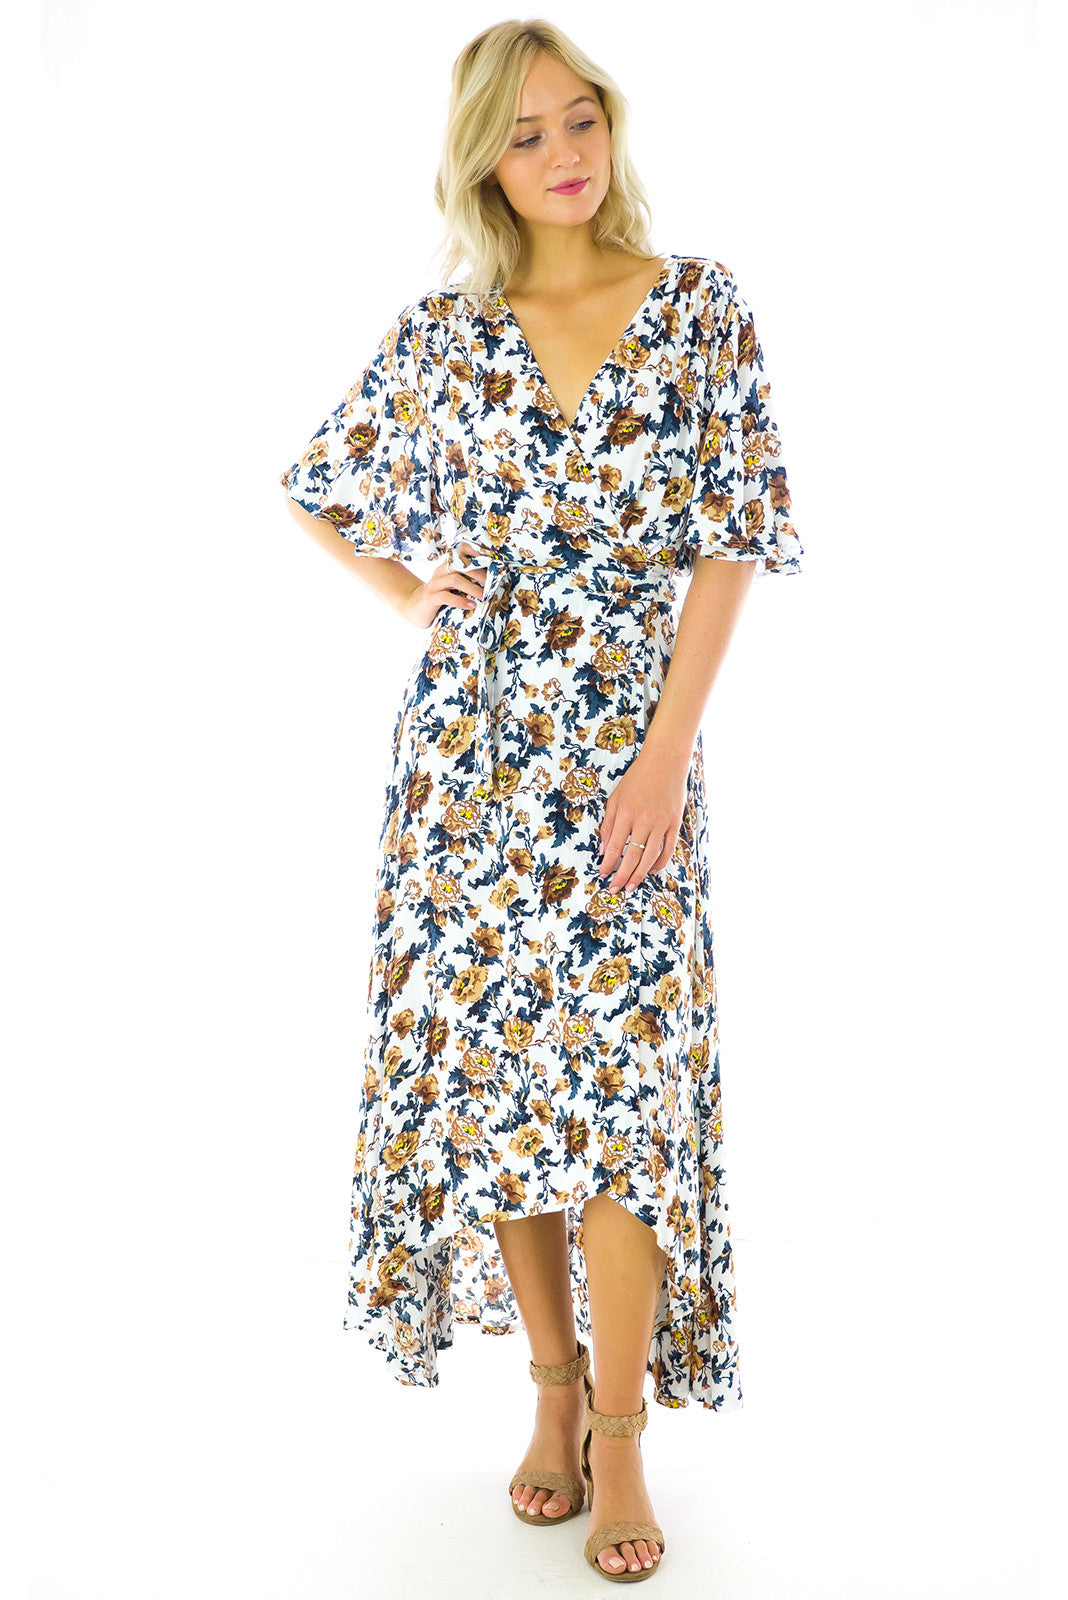 Blooms Maxi Wrap Dress, romantic floral print, wraparound style